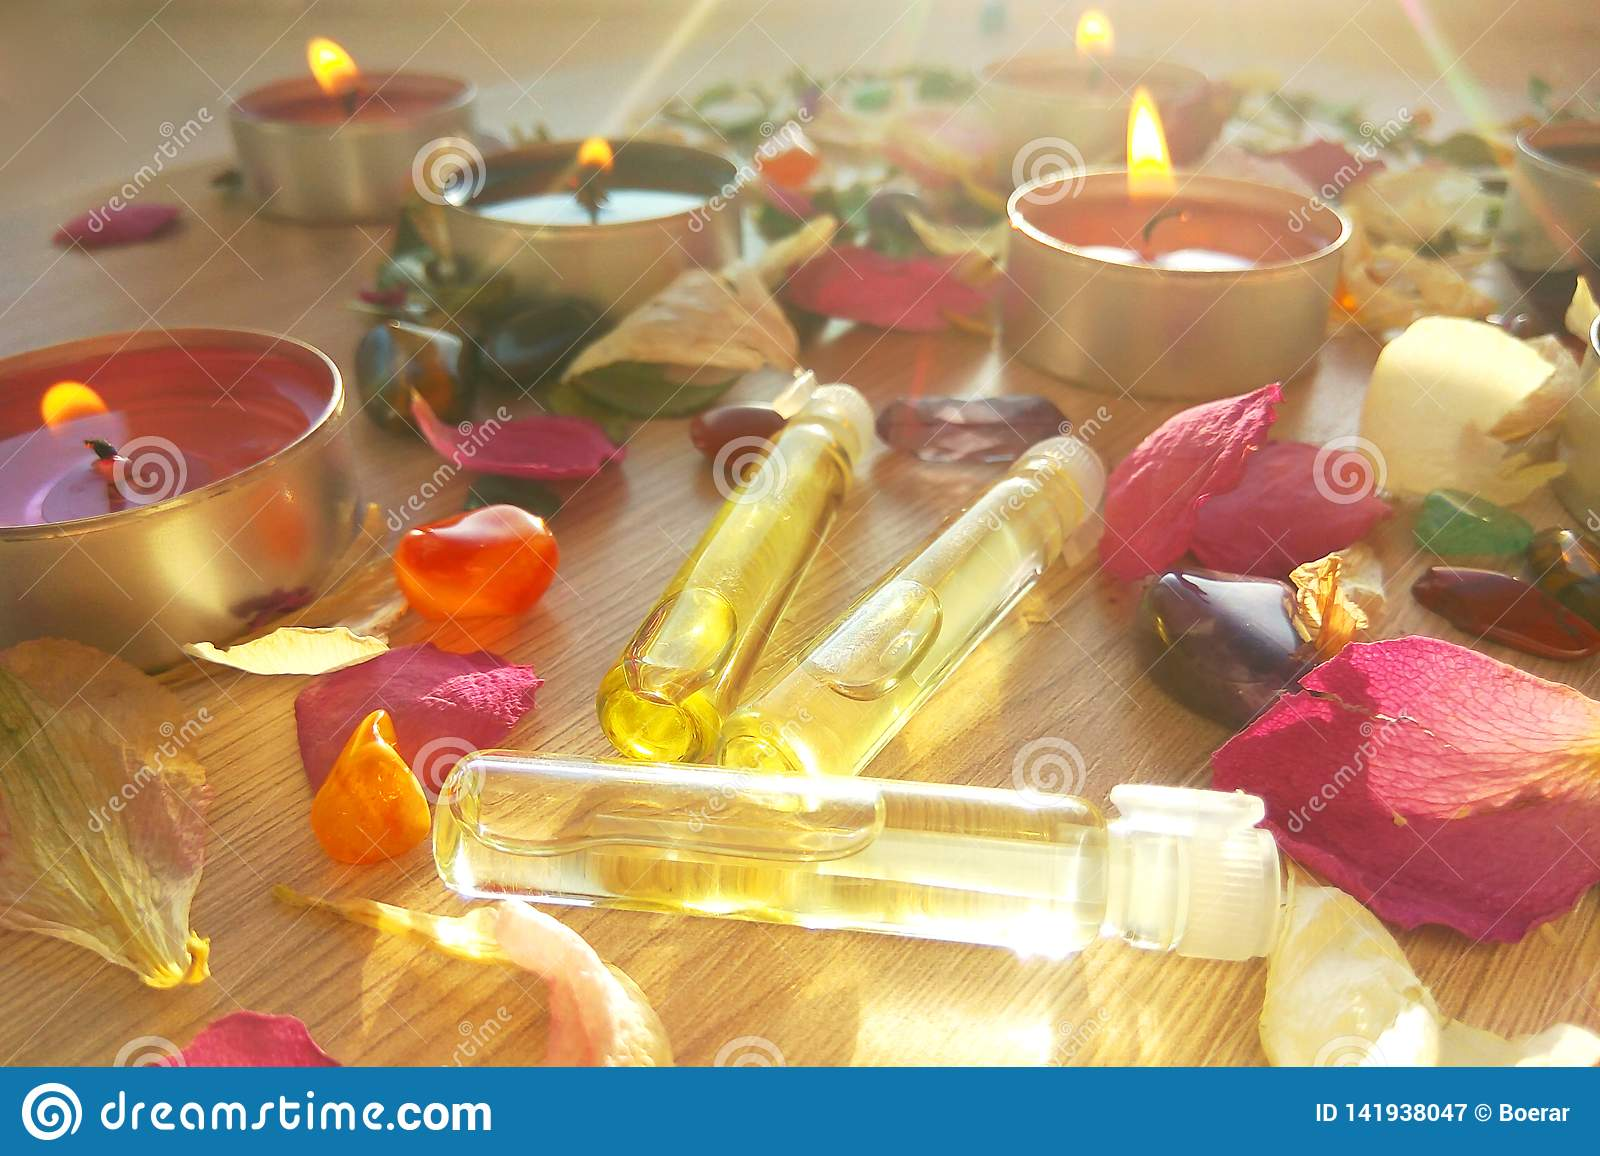 Burning candles with essential spa oil, rose flower petals and colorful gems on wooden background